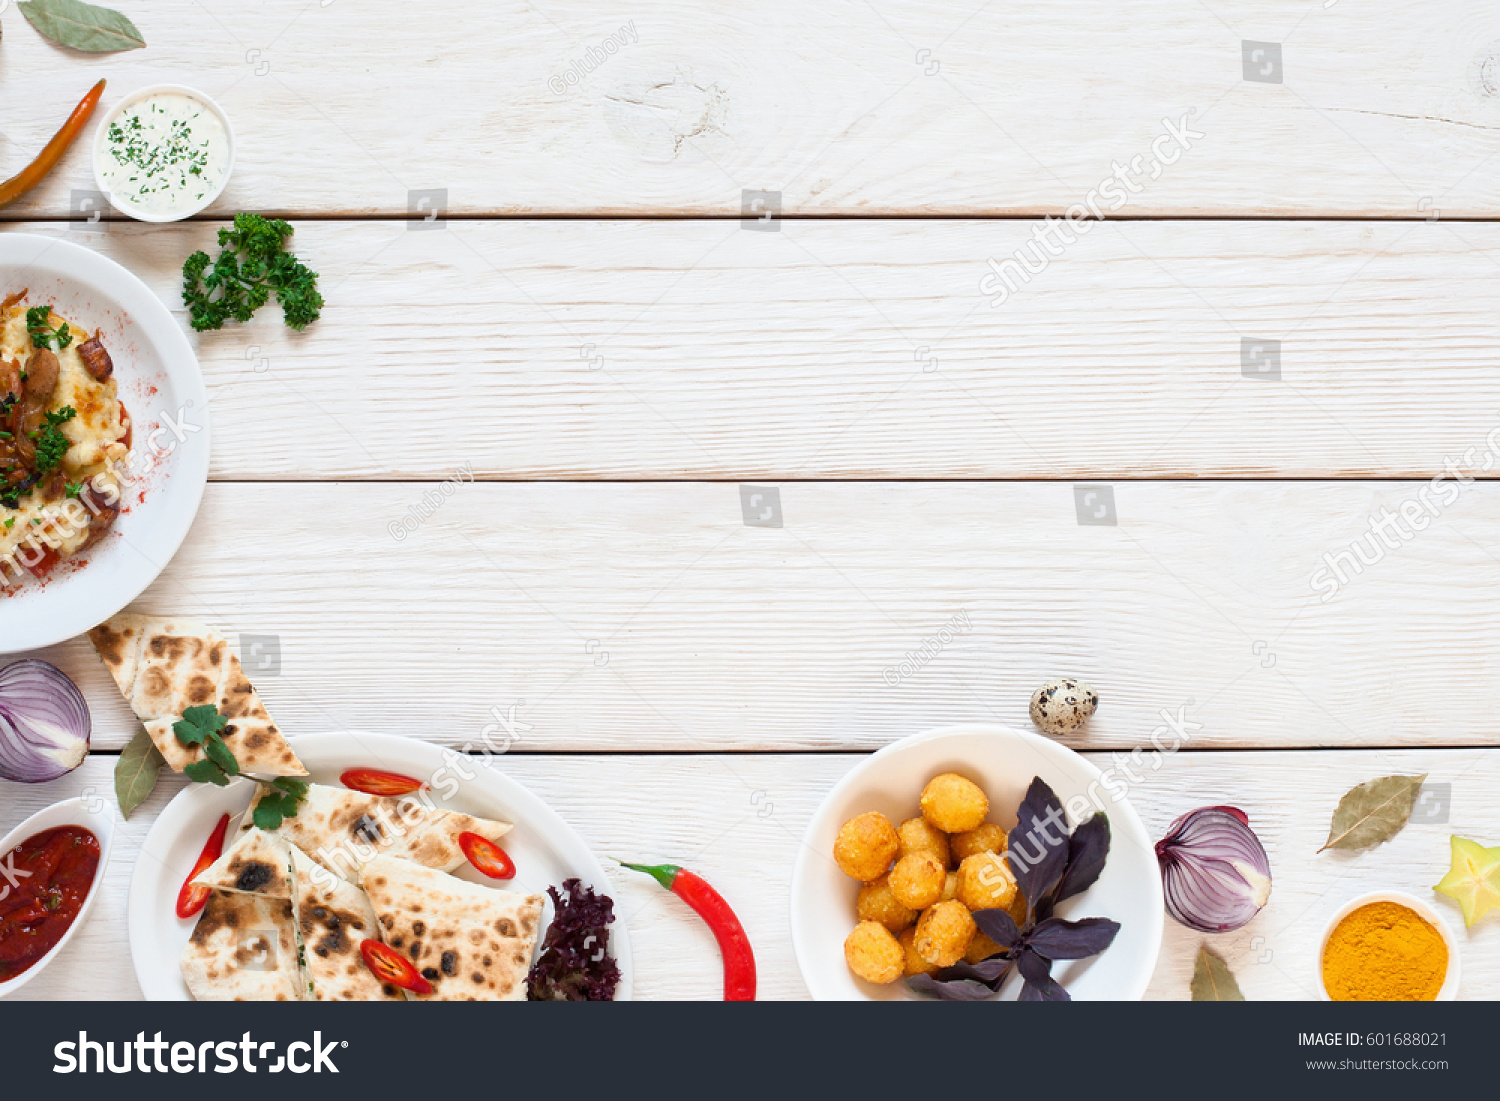 White Wooden Table With Breakfast Border Flat Lay Top View On Frame Of Delicious Snacks